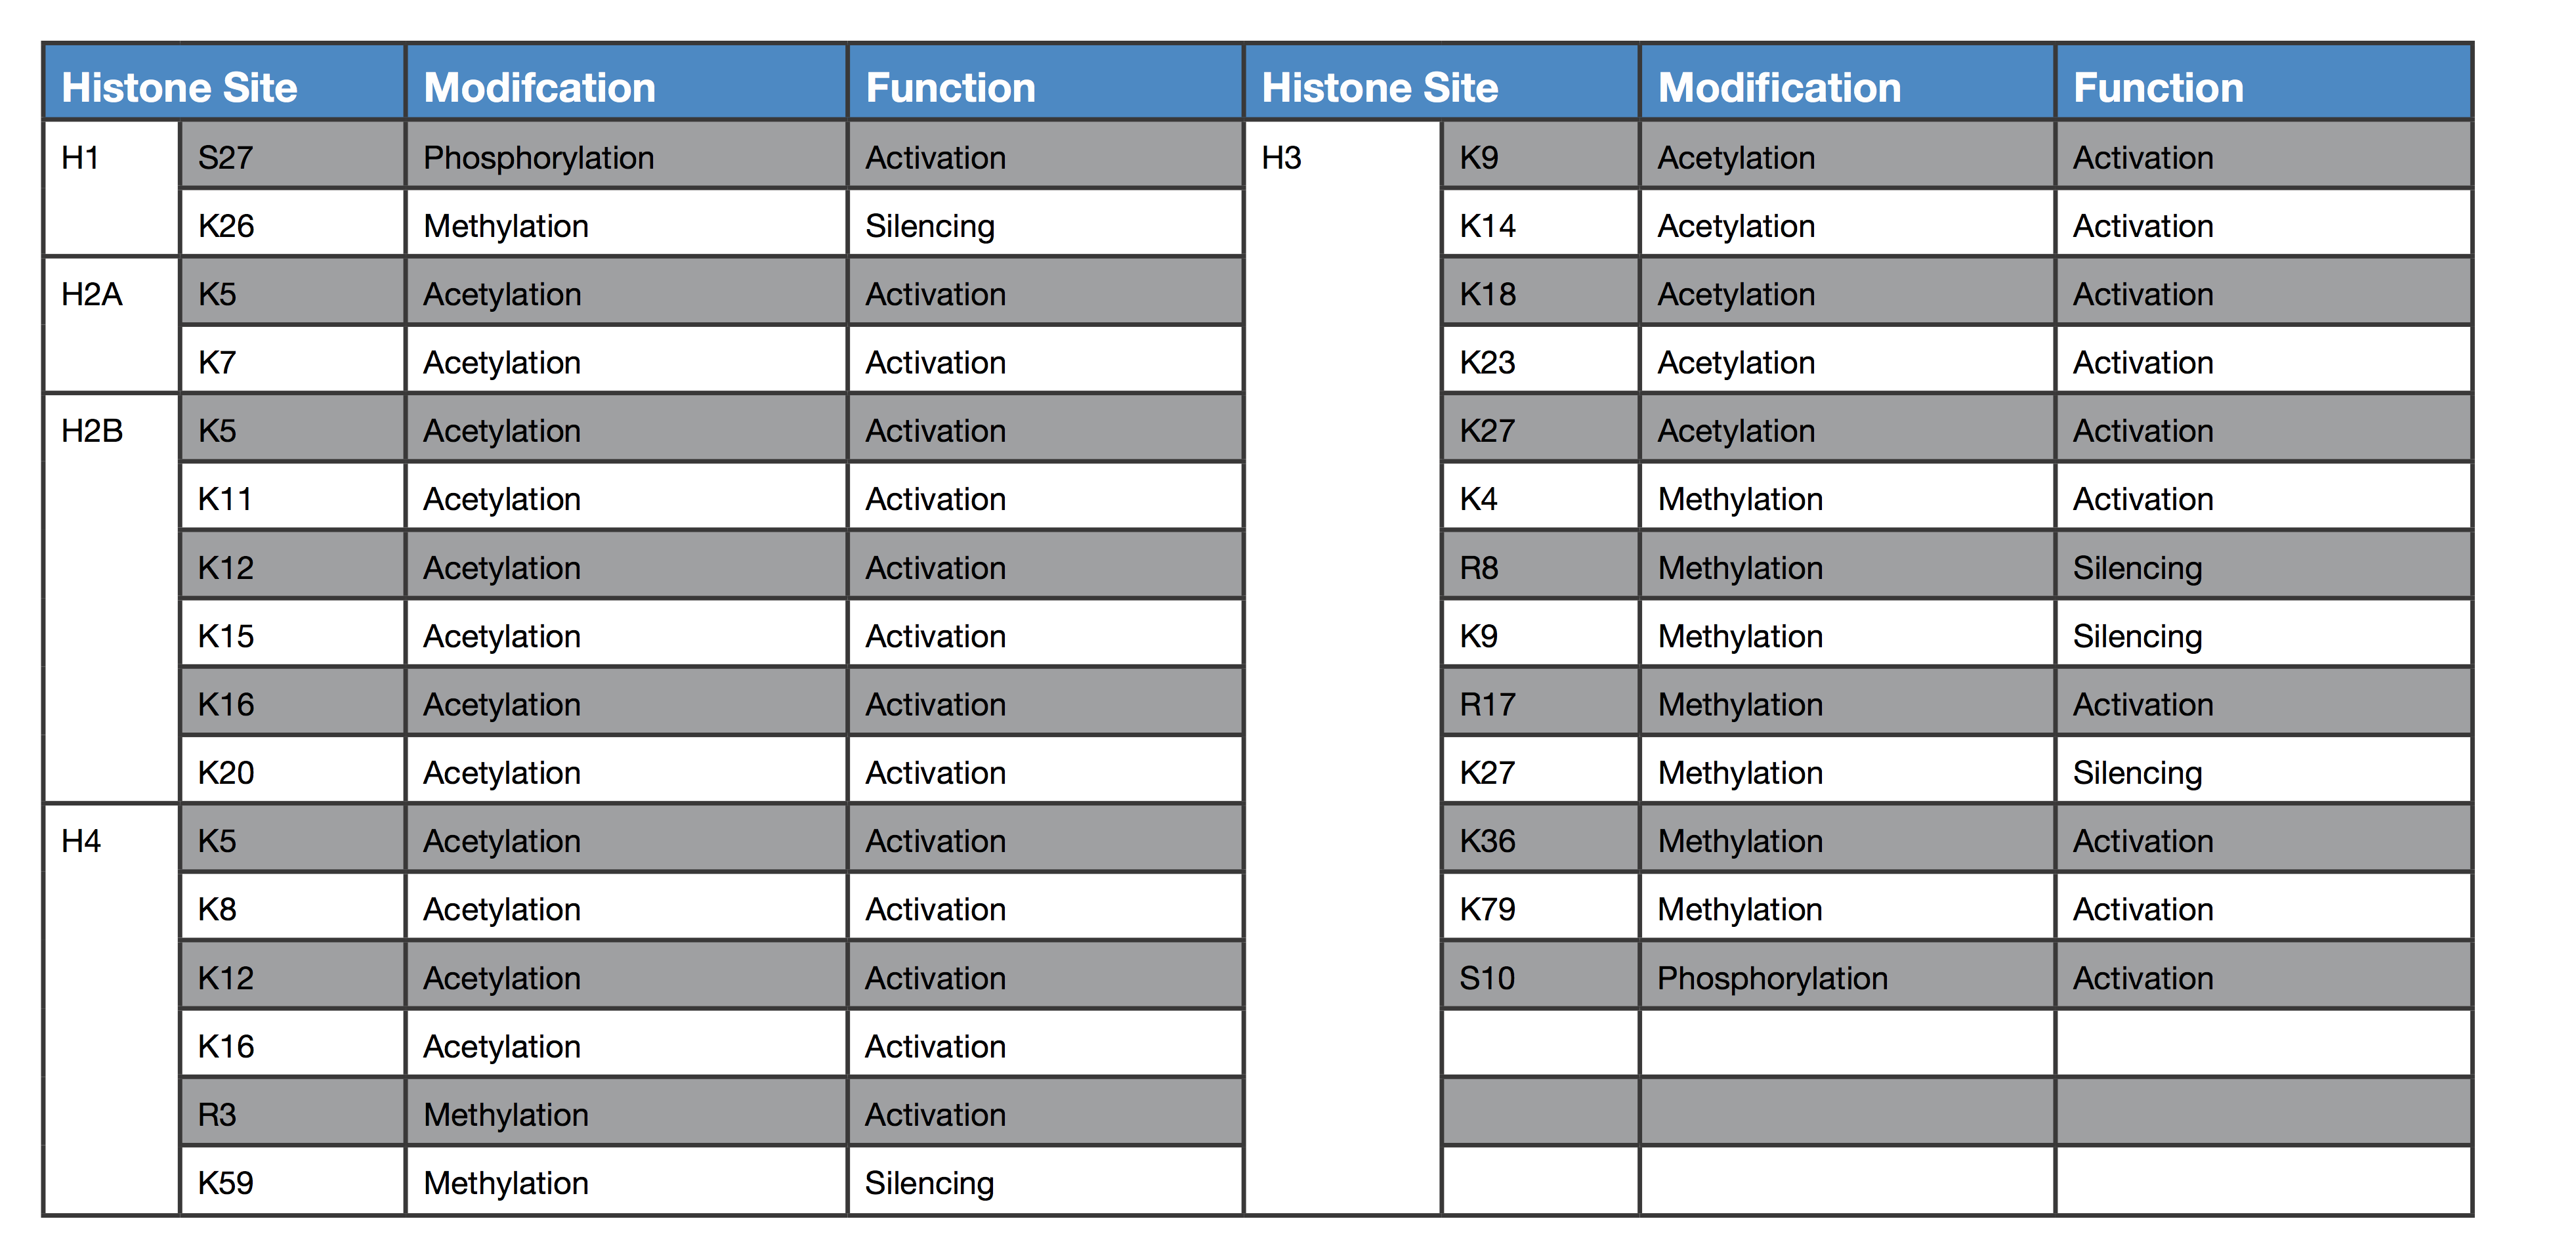 Histone Modification Table.png